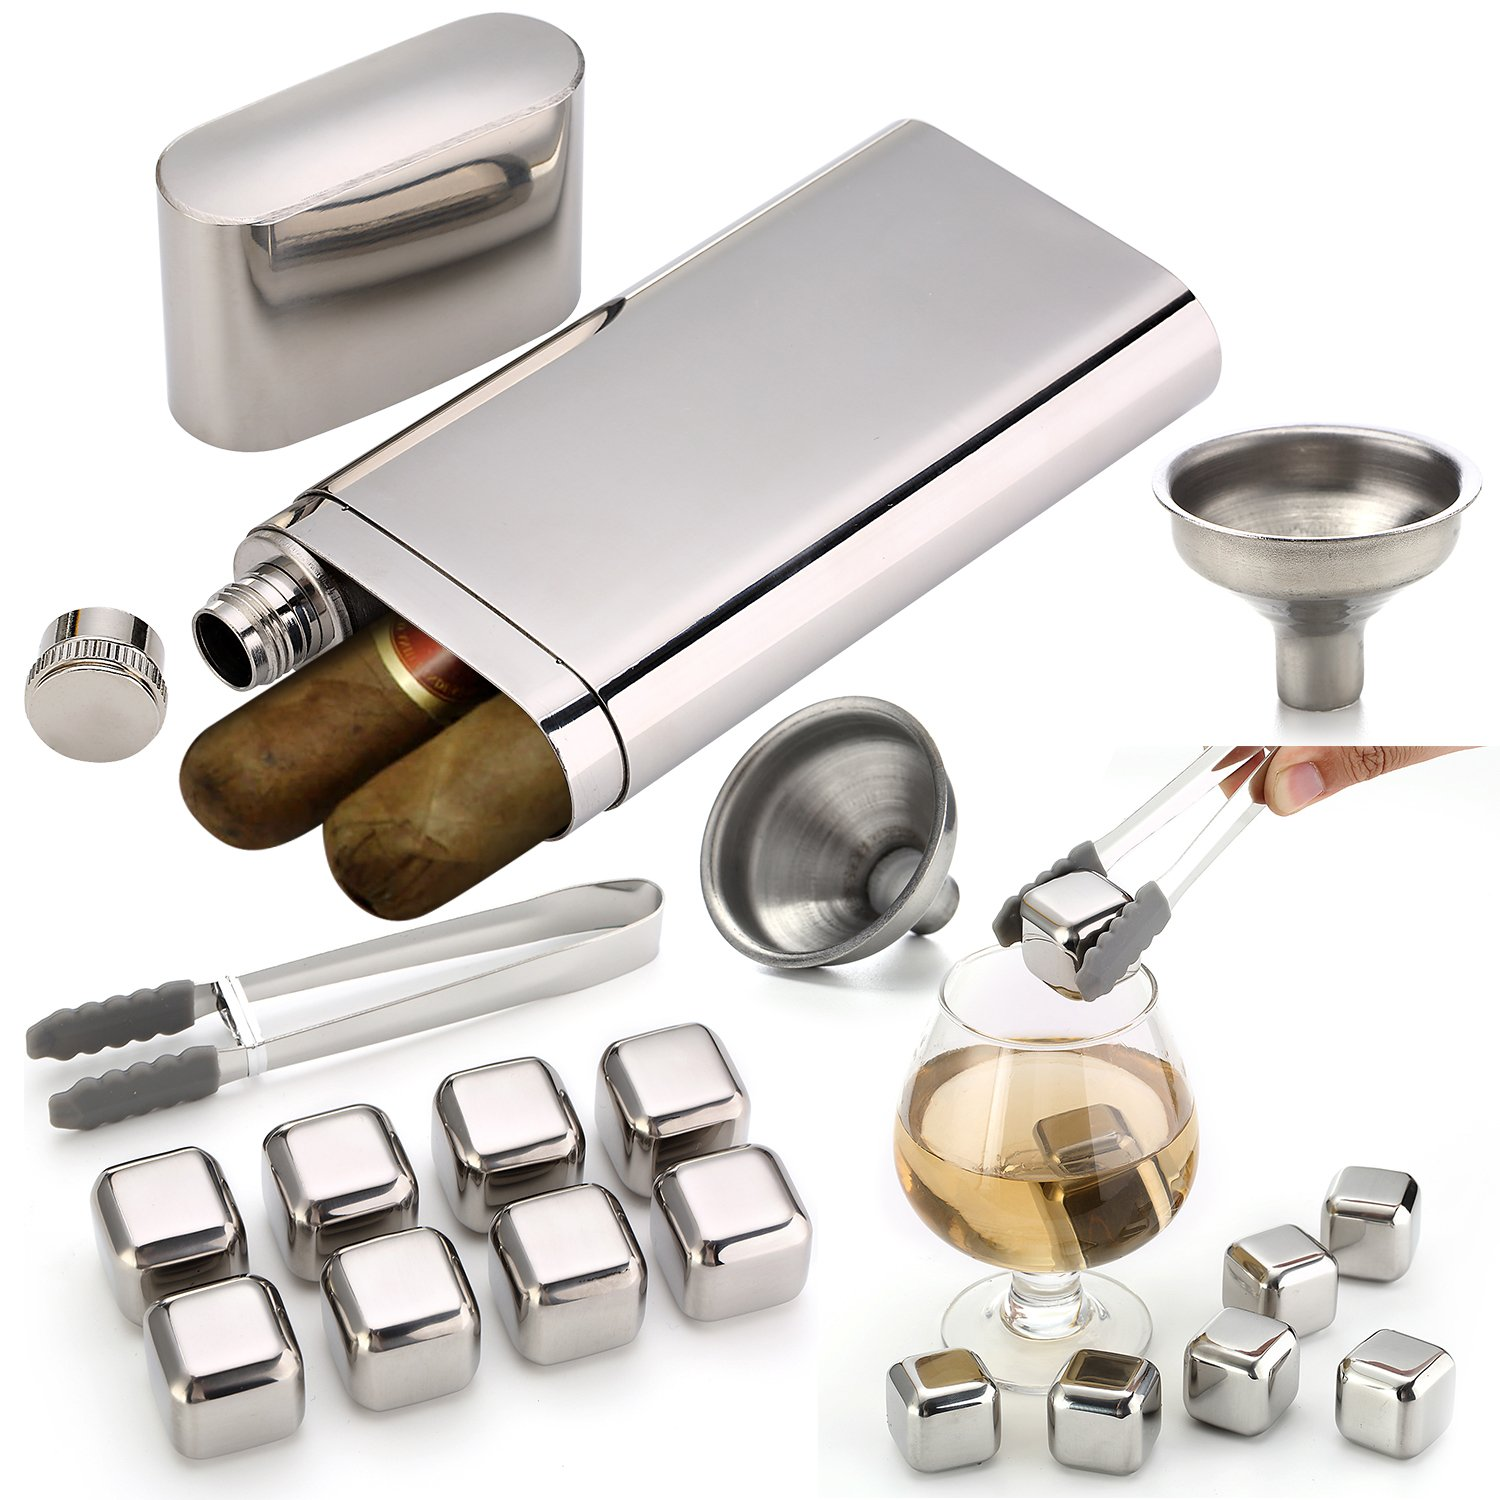 Stainless Steel Chilling Rocks / Stones (8) + Dual Cigar Flask (1) [Gift Set] + Funnel (1) + Tongs (1) [FDA Approved]